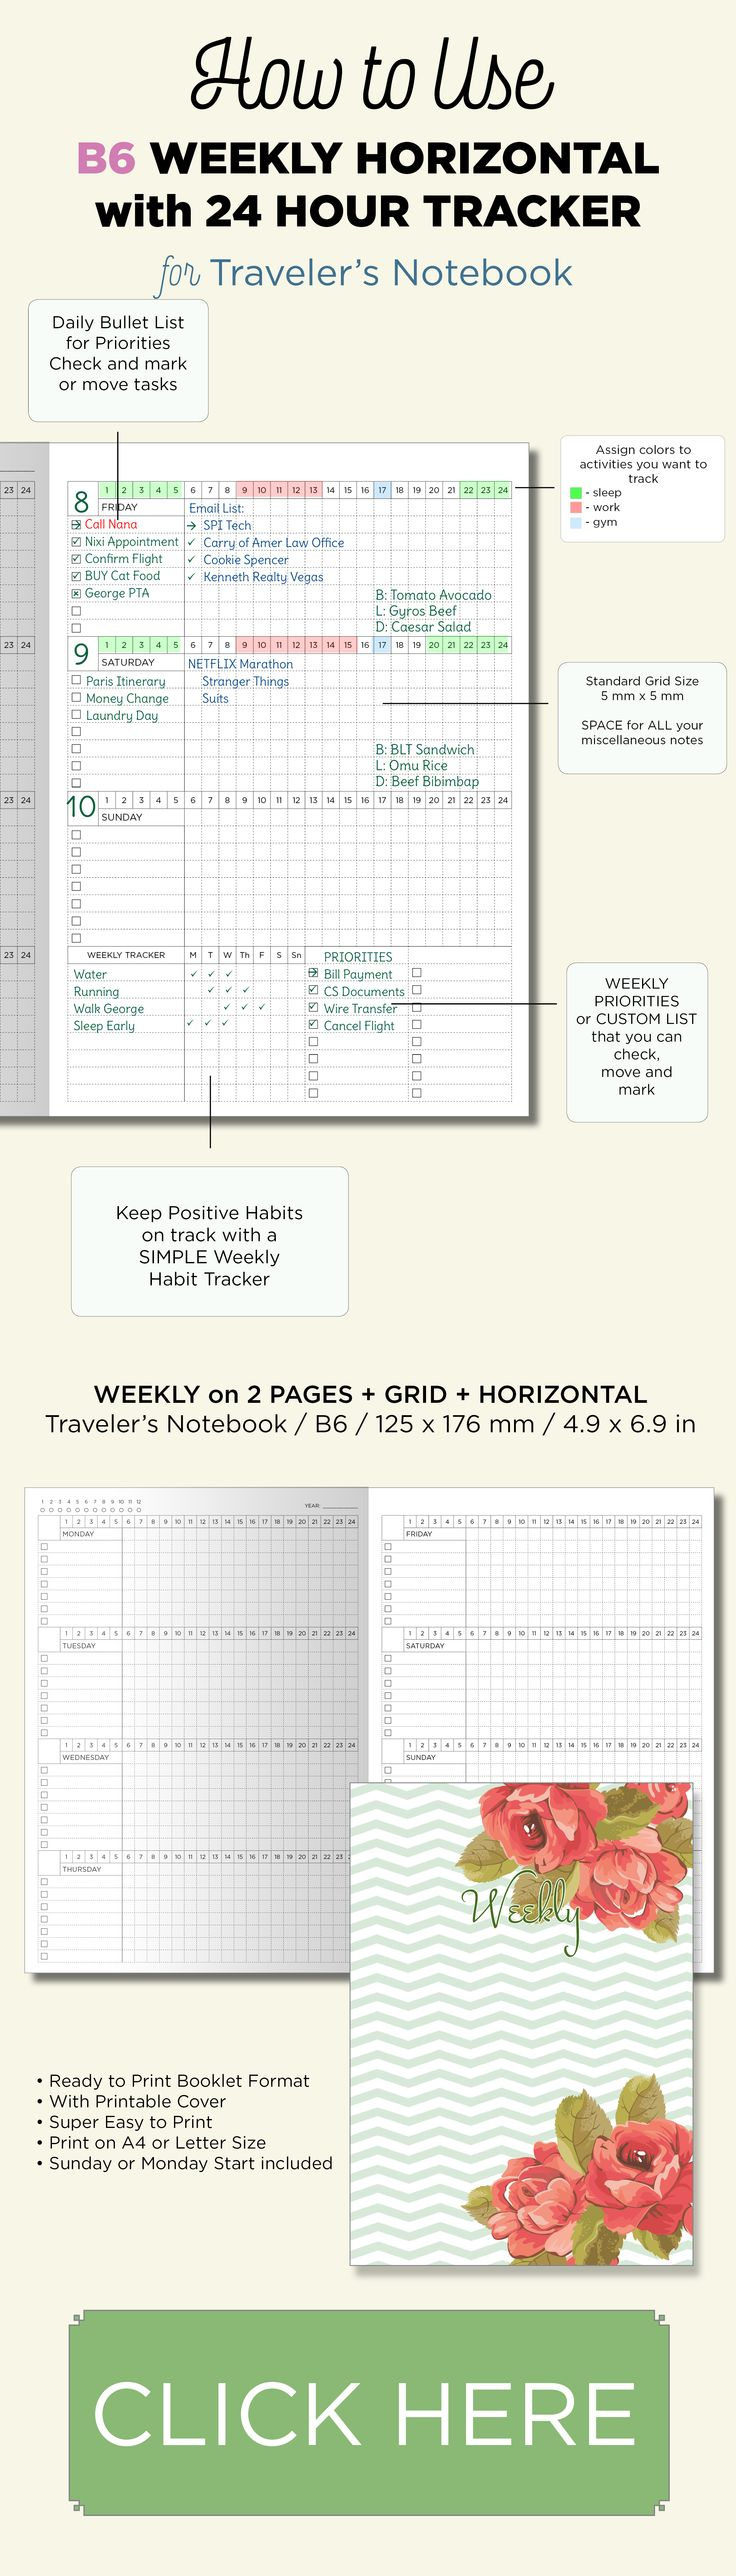 B6 Weekly on 2 Pages Horizontal View - Traveler's Notebook Printable Insert with 24 hour tracker and weekly trackers.